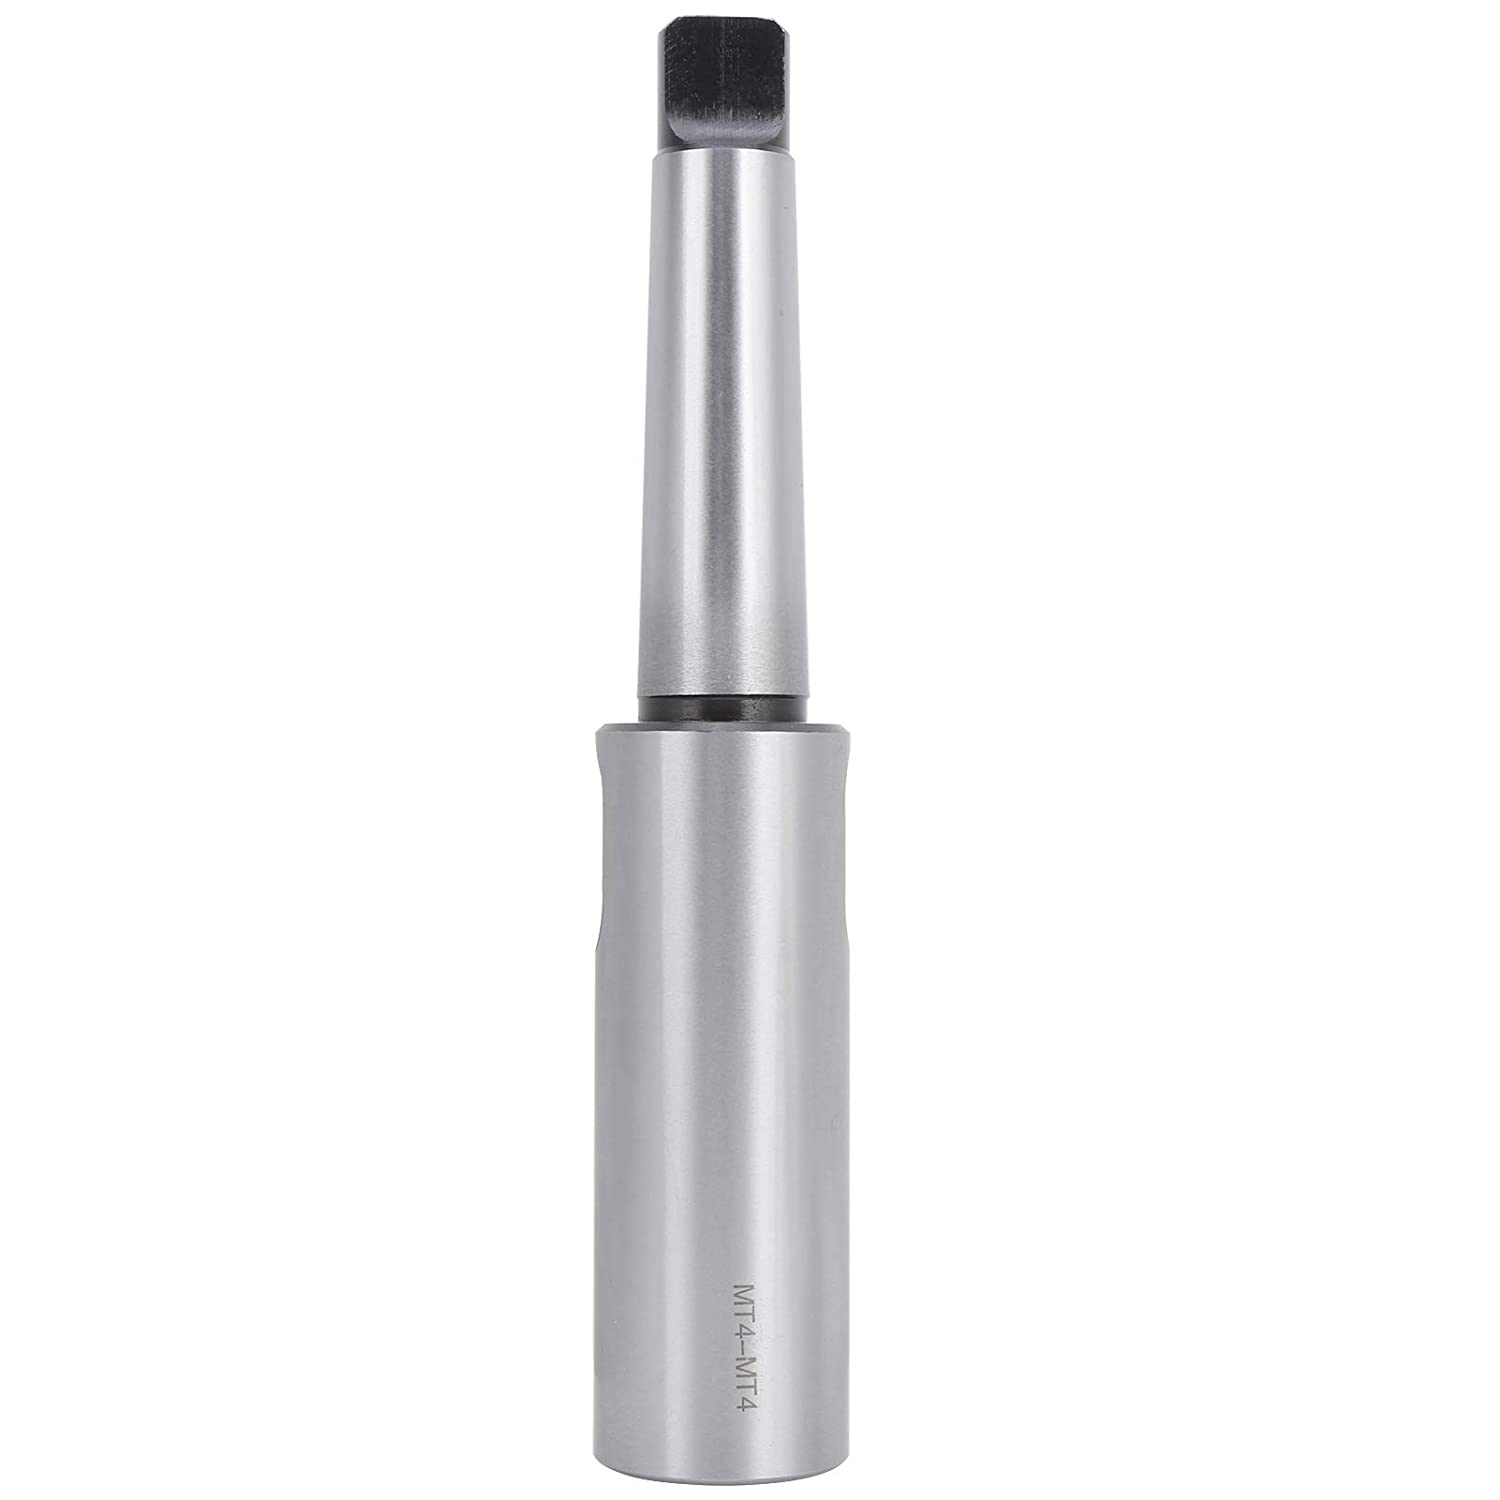 Taper Drill Sleeve Taper Bit Sleeve Morse Taper Drill Sleeve MT4 to MT4 Taper Drill Sleeve Reducing Sleeve Adapter for Home Factory Industry Repair Shop